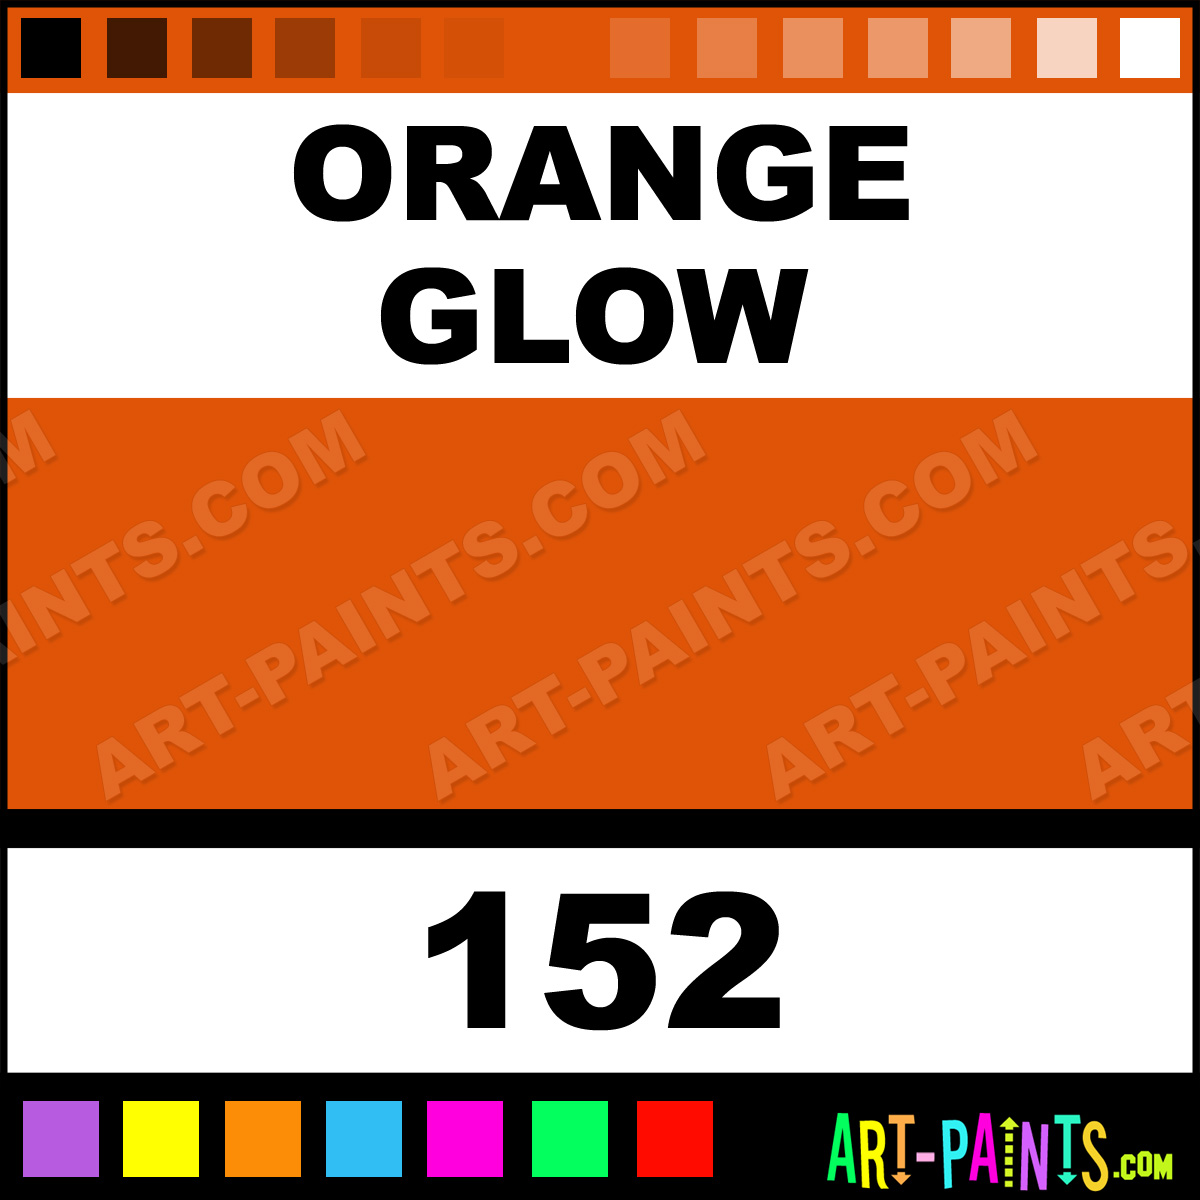 orange glow opaque stain ceramic paints 152 orange glow paint. Black Bedroom Furniture Sets. Home Design Ideas